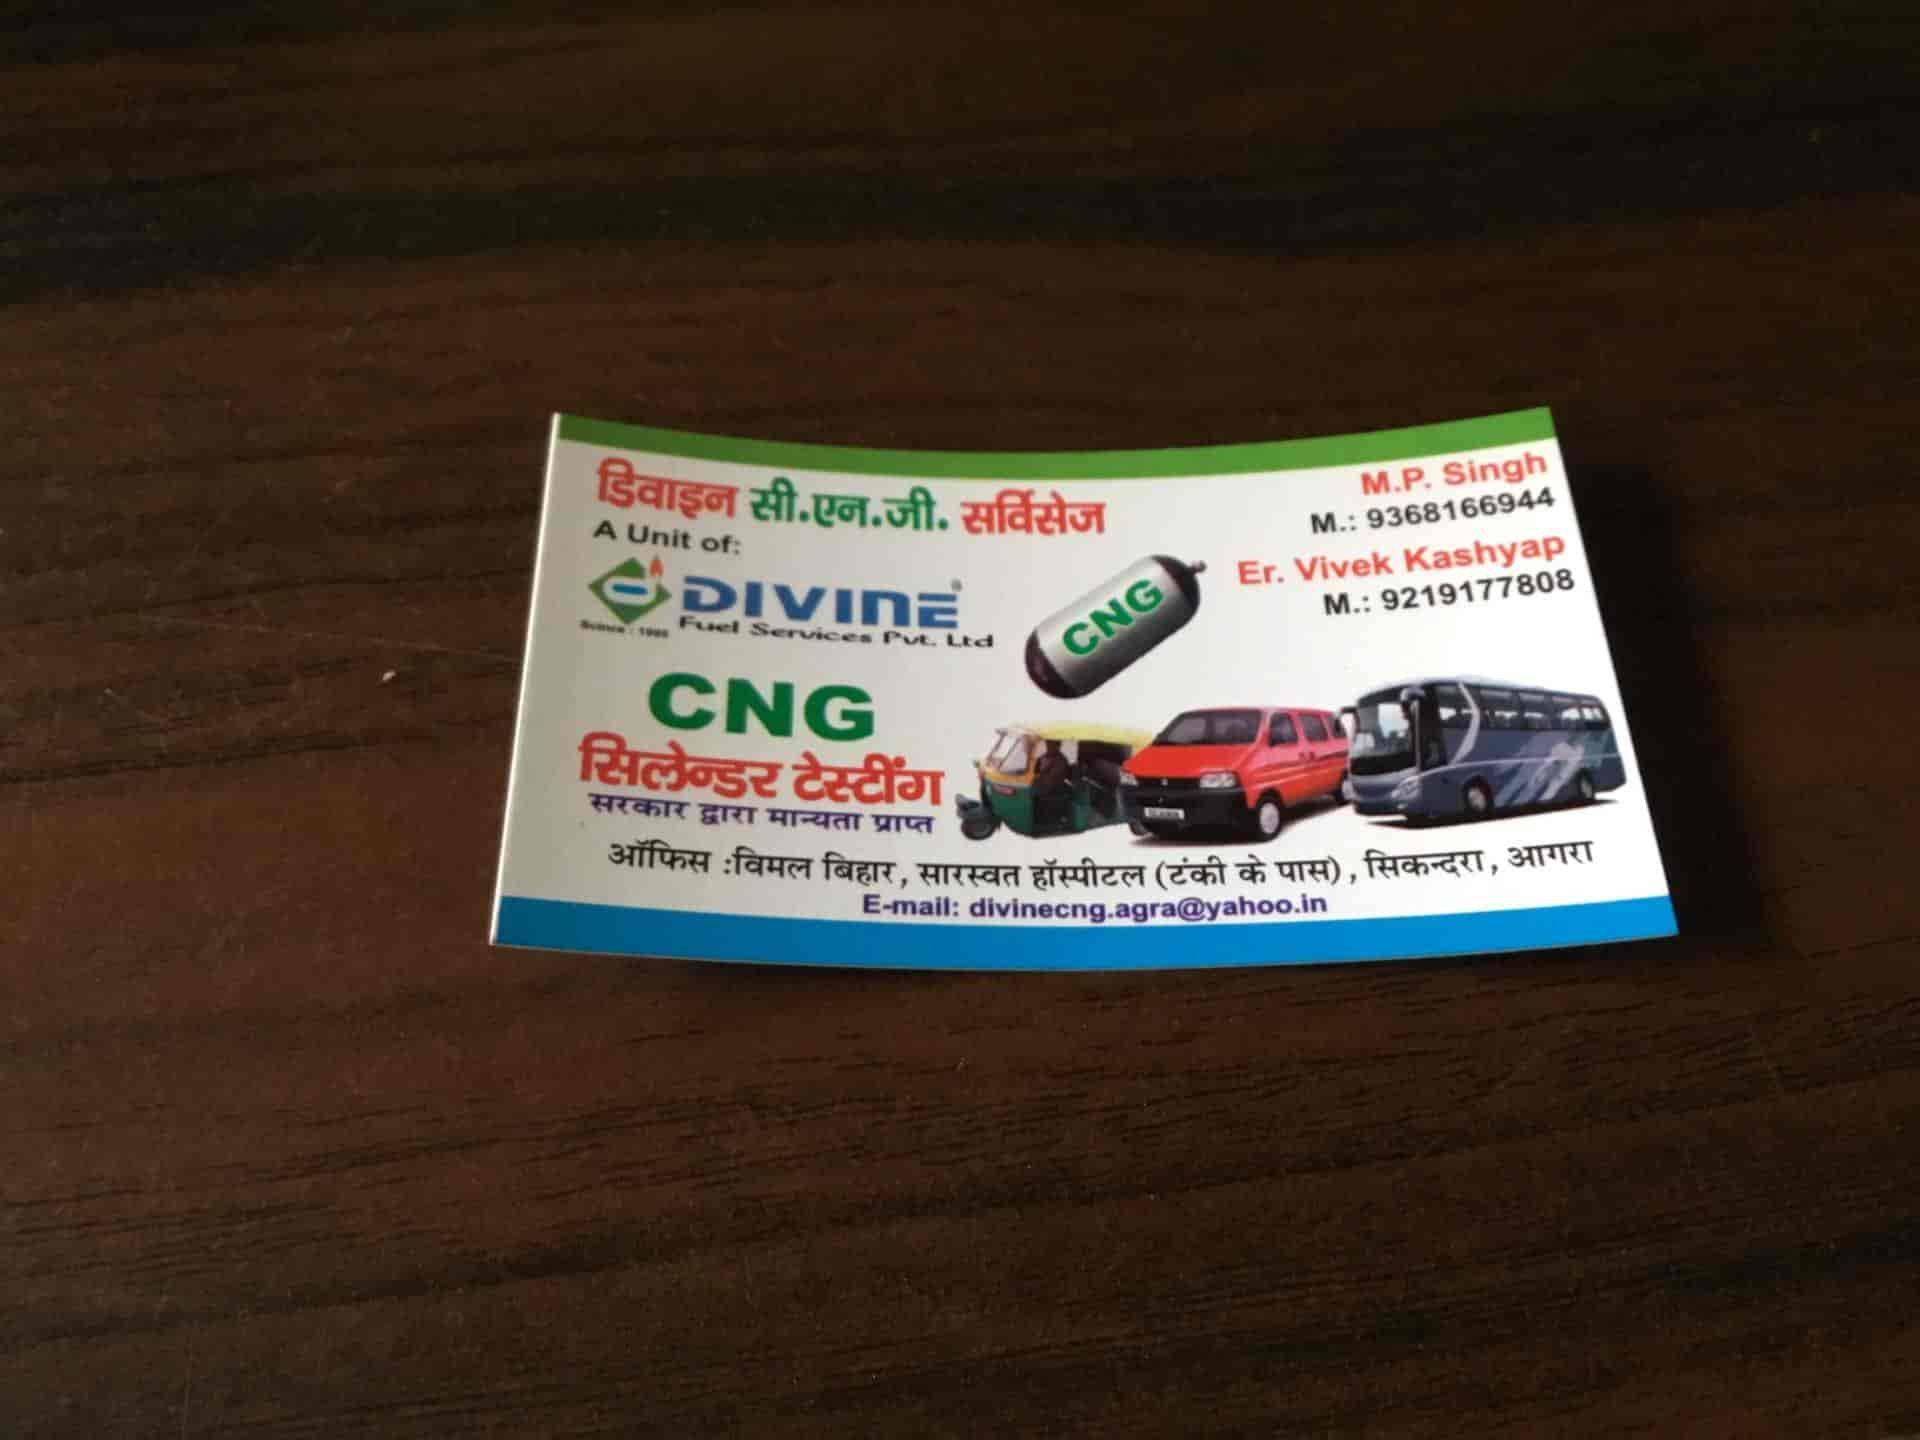 Divine Cng Services Pvt Ltd, Sikandra - CNG Cylinder Testing